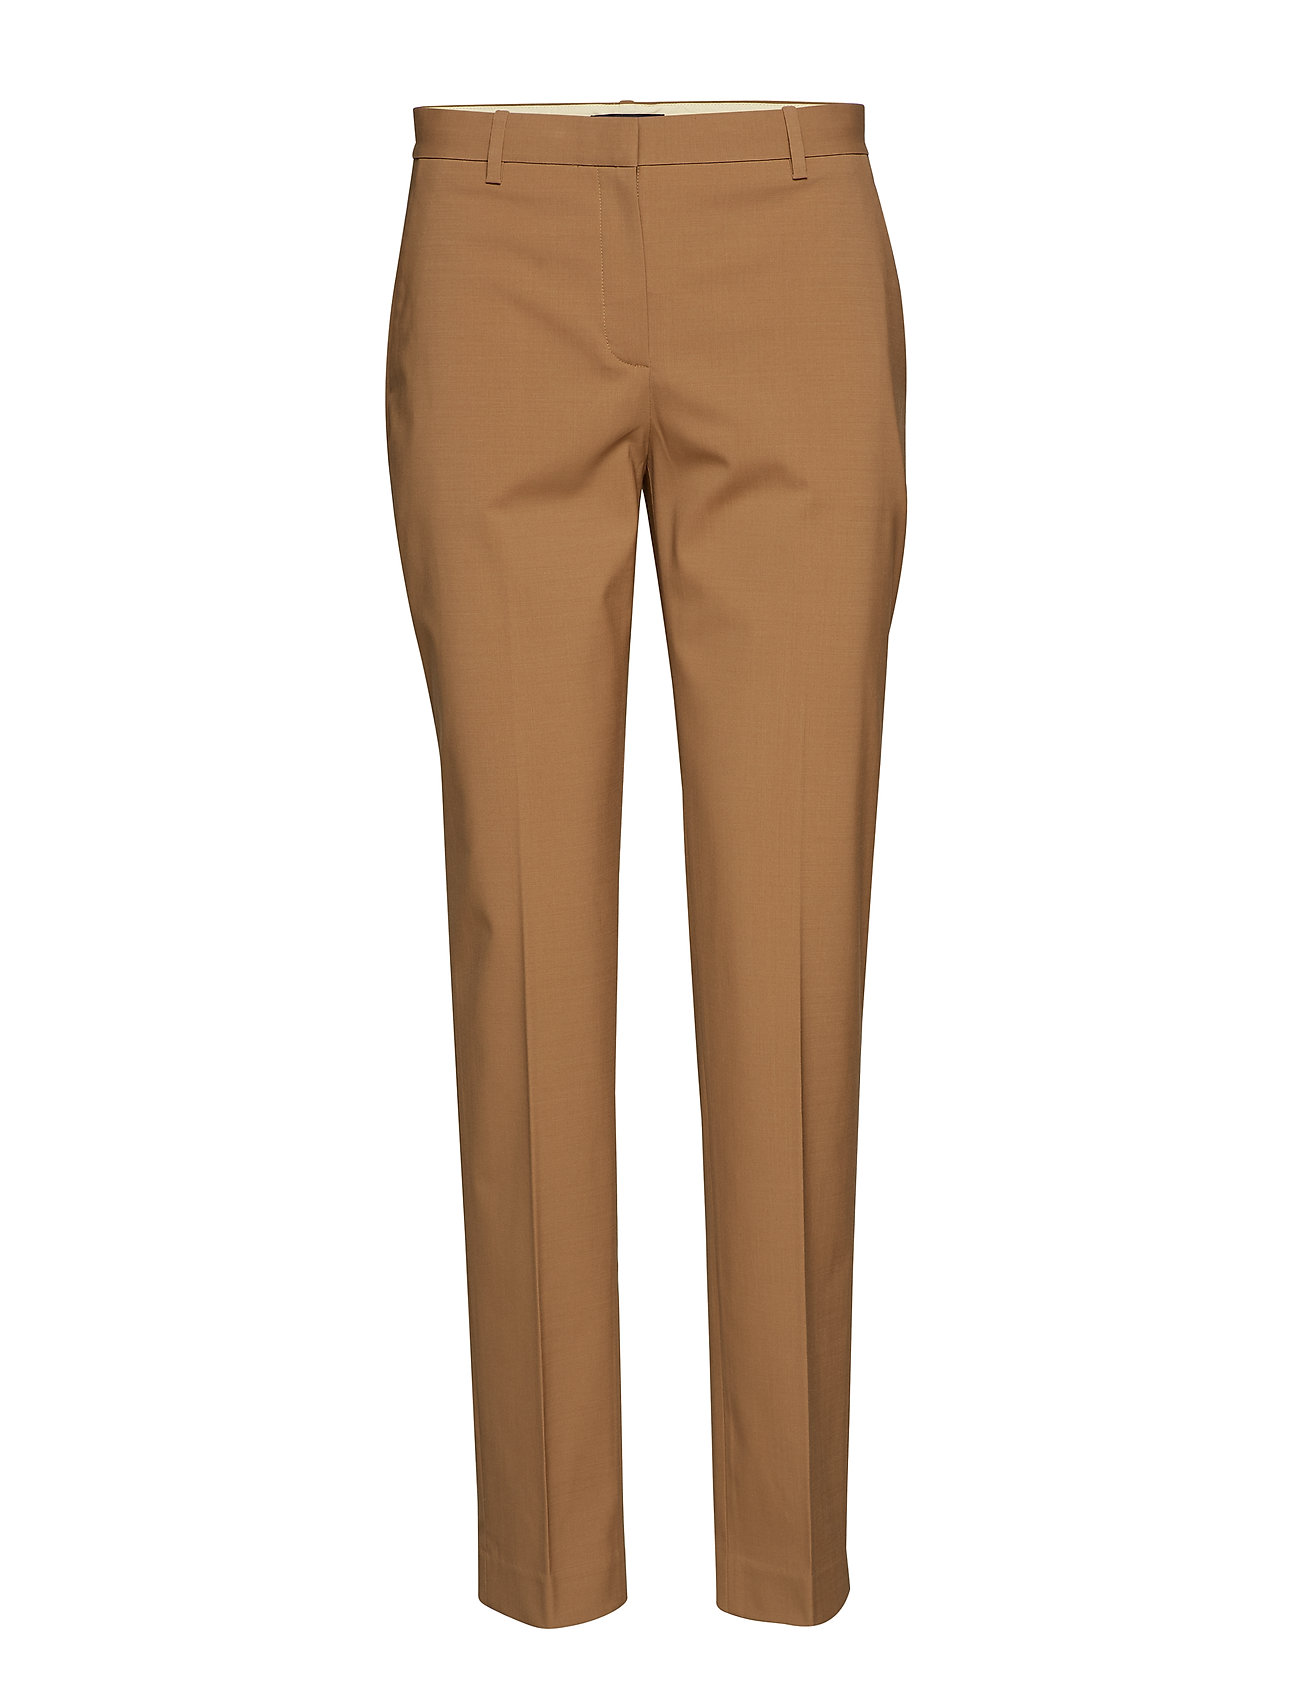 CanvasTheory Trouser CanvasTheory Trouser Tailored CanvasTheory tr2beige tr2beige tr2beige Trouser Tailored Trouser Tailored tr2beige Tailored F1Jc3TlK